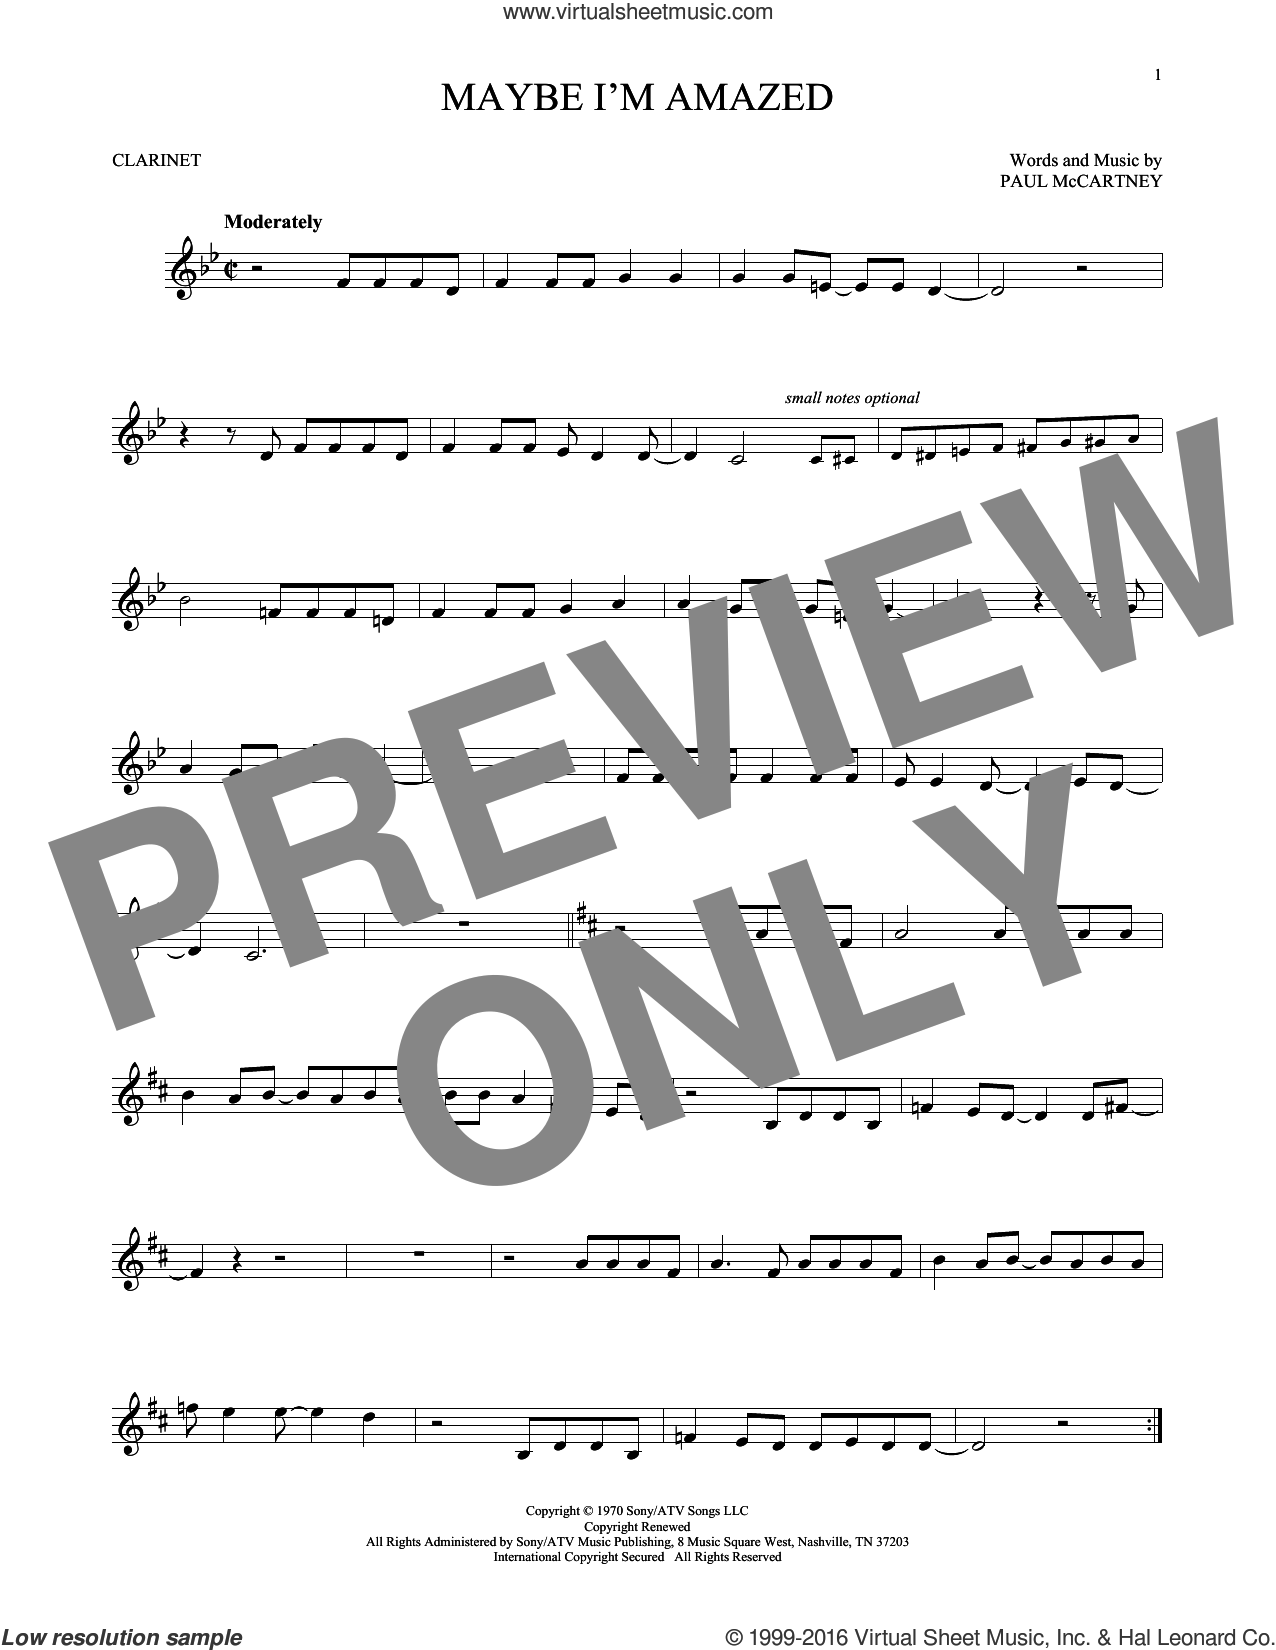 Maybe I'm Amazed sheet music for clarinet solo by Paul McCartney